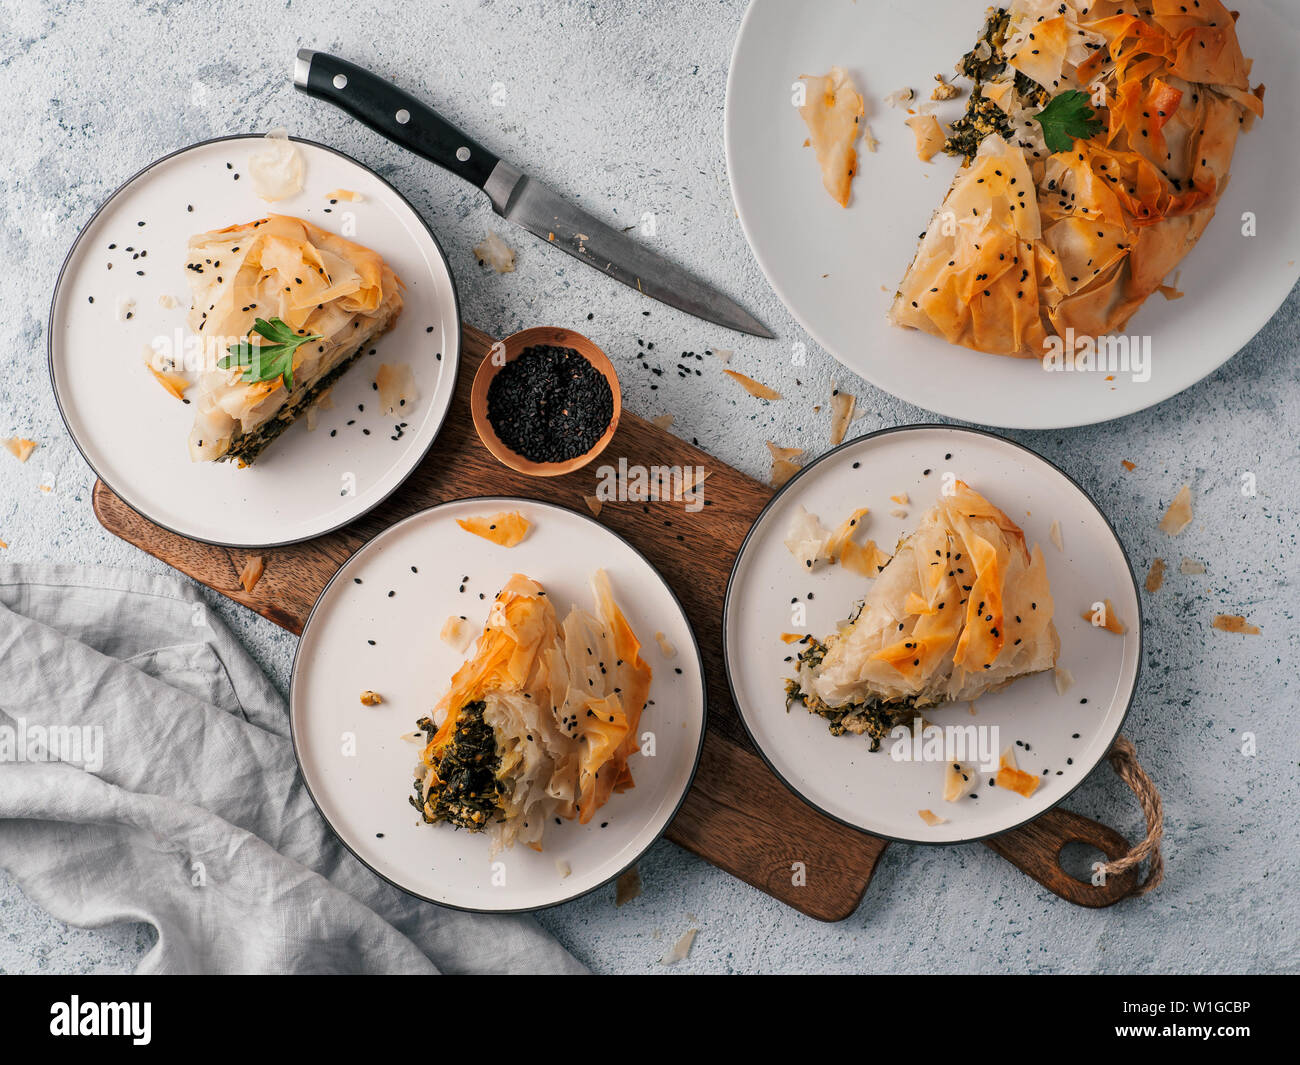 Greek Pie Spanakopita On Gray Background Ideas And Recipes For Vegetarian Or Vegan Spanakopita Spinach Pie From Fillo Pastry Slices Pie On Plates Copy Space Top View Or Flat Lay Stock Photo